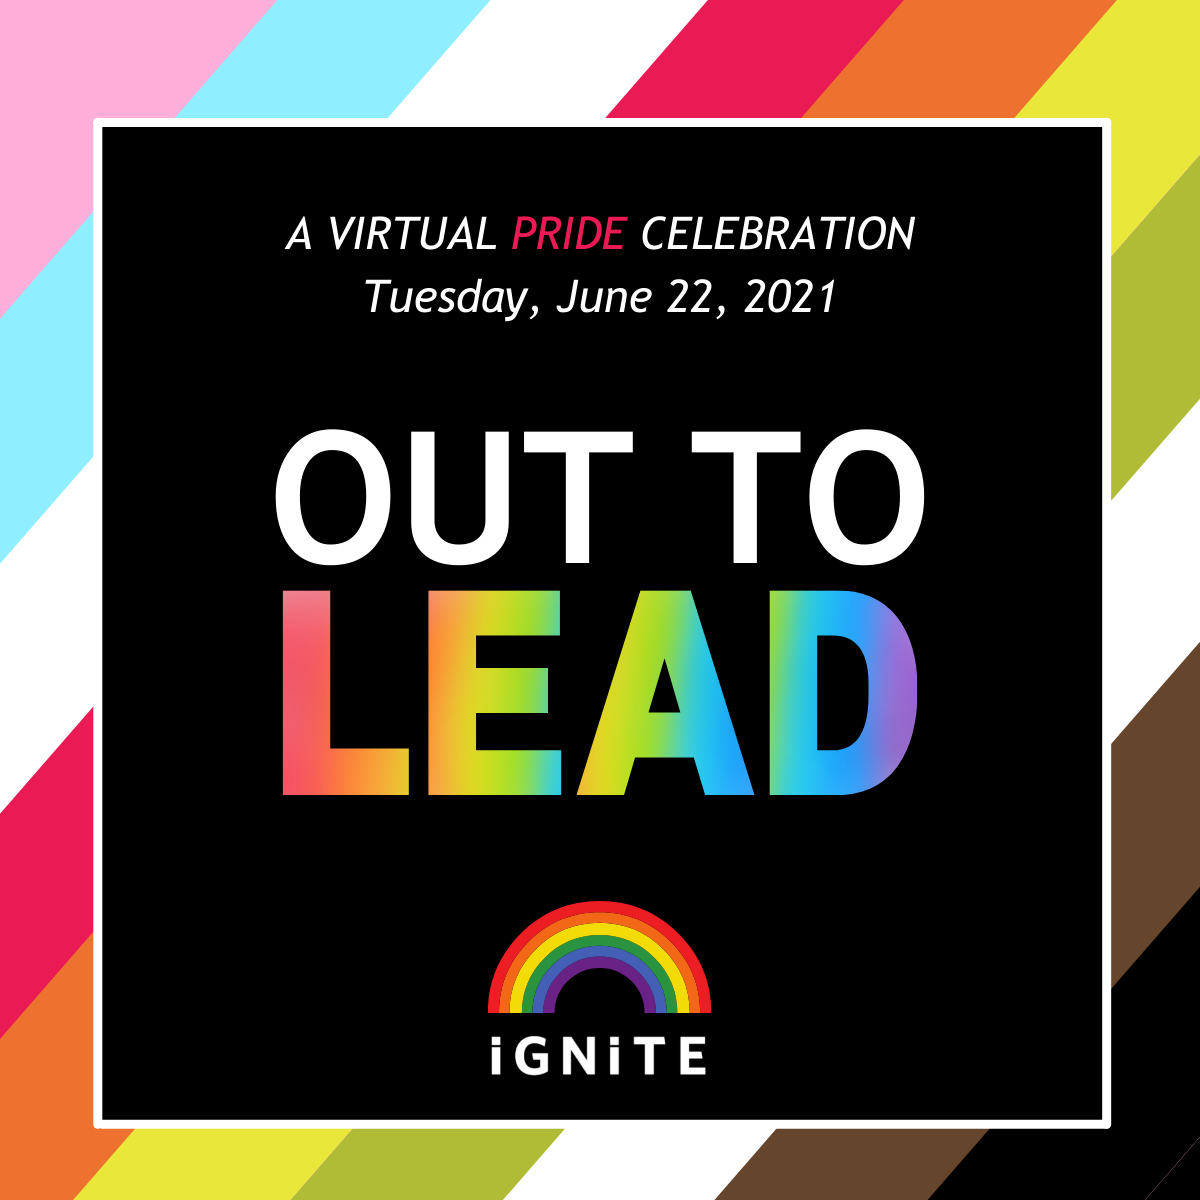 Out to Lead Pride 2021 ginal graphic